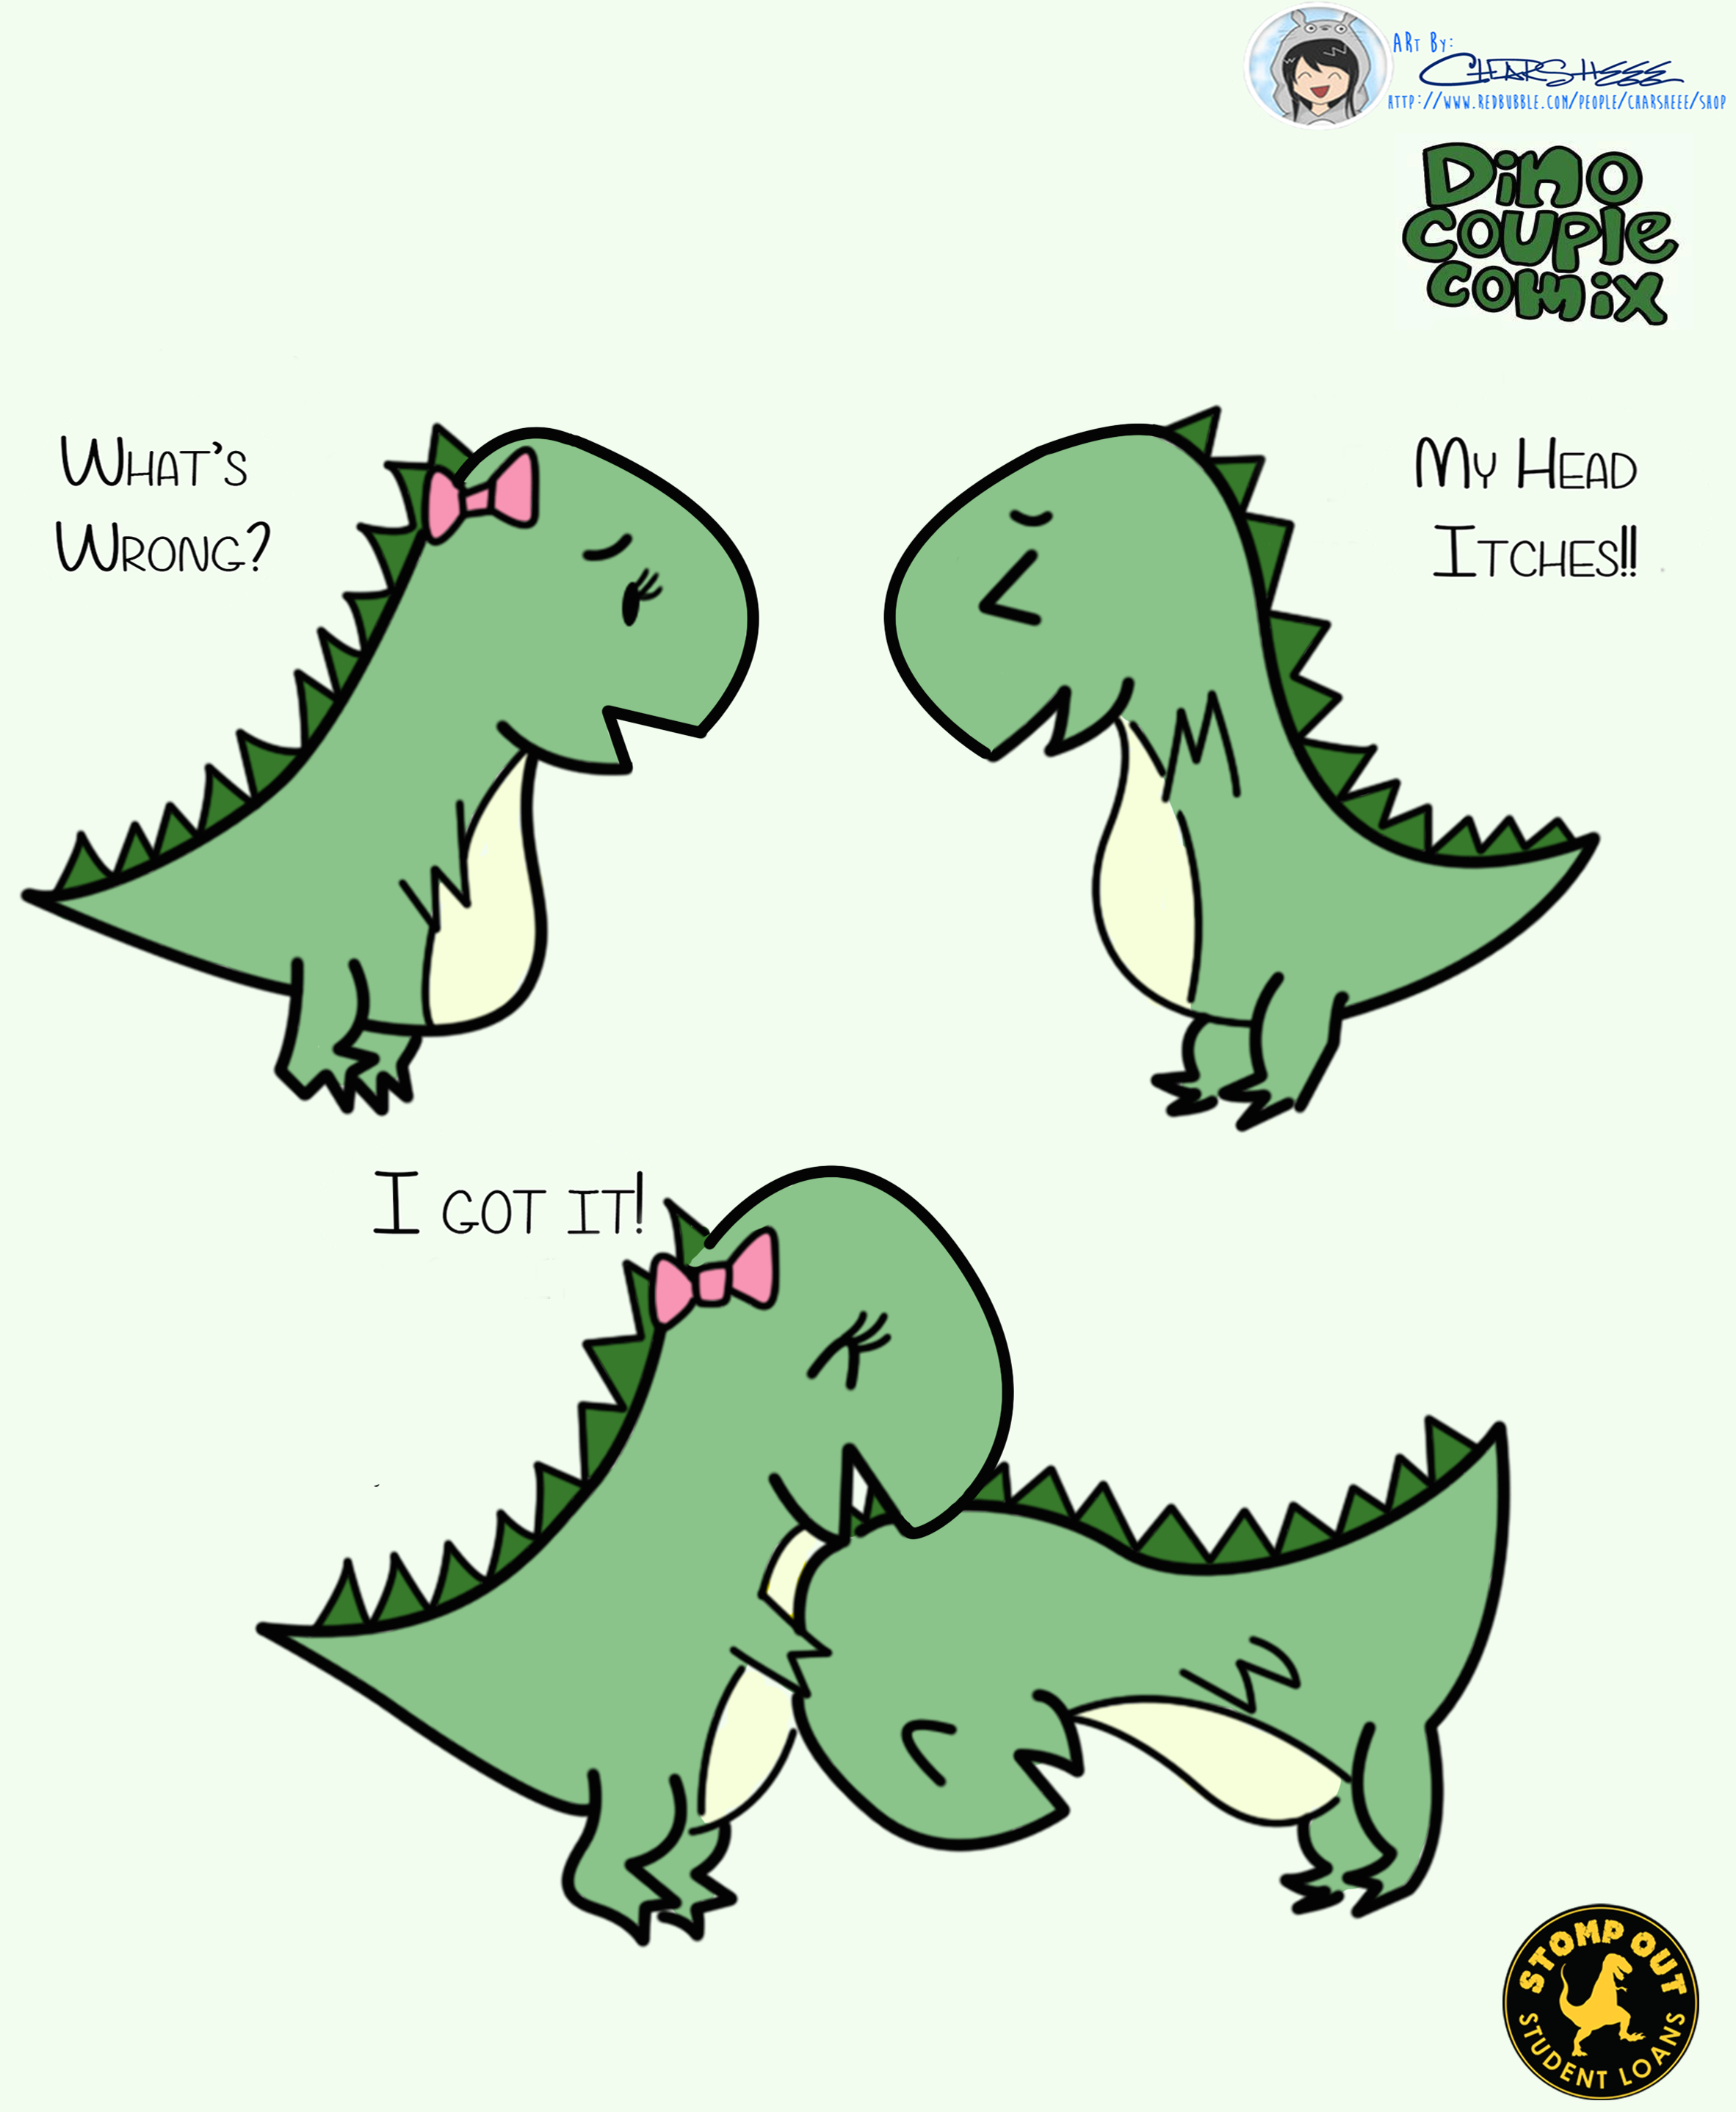 Short Arms Big Heads Lot S Of Love Artwork By Charsheee Shop Cute Dinosaur Cute Doodles Cute Puns